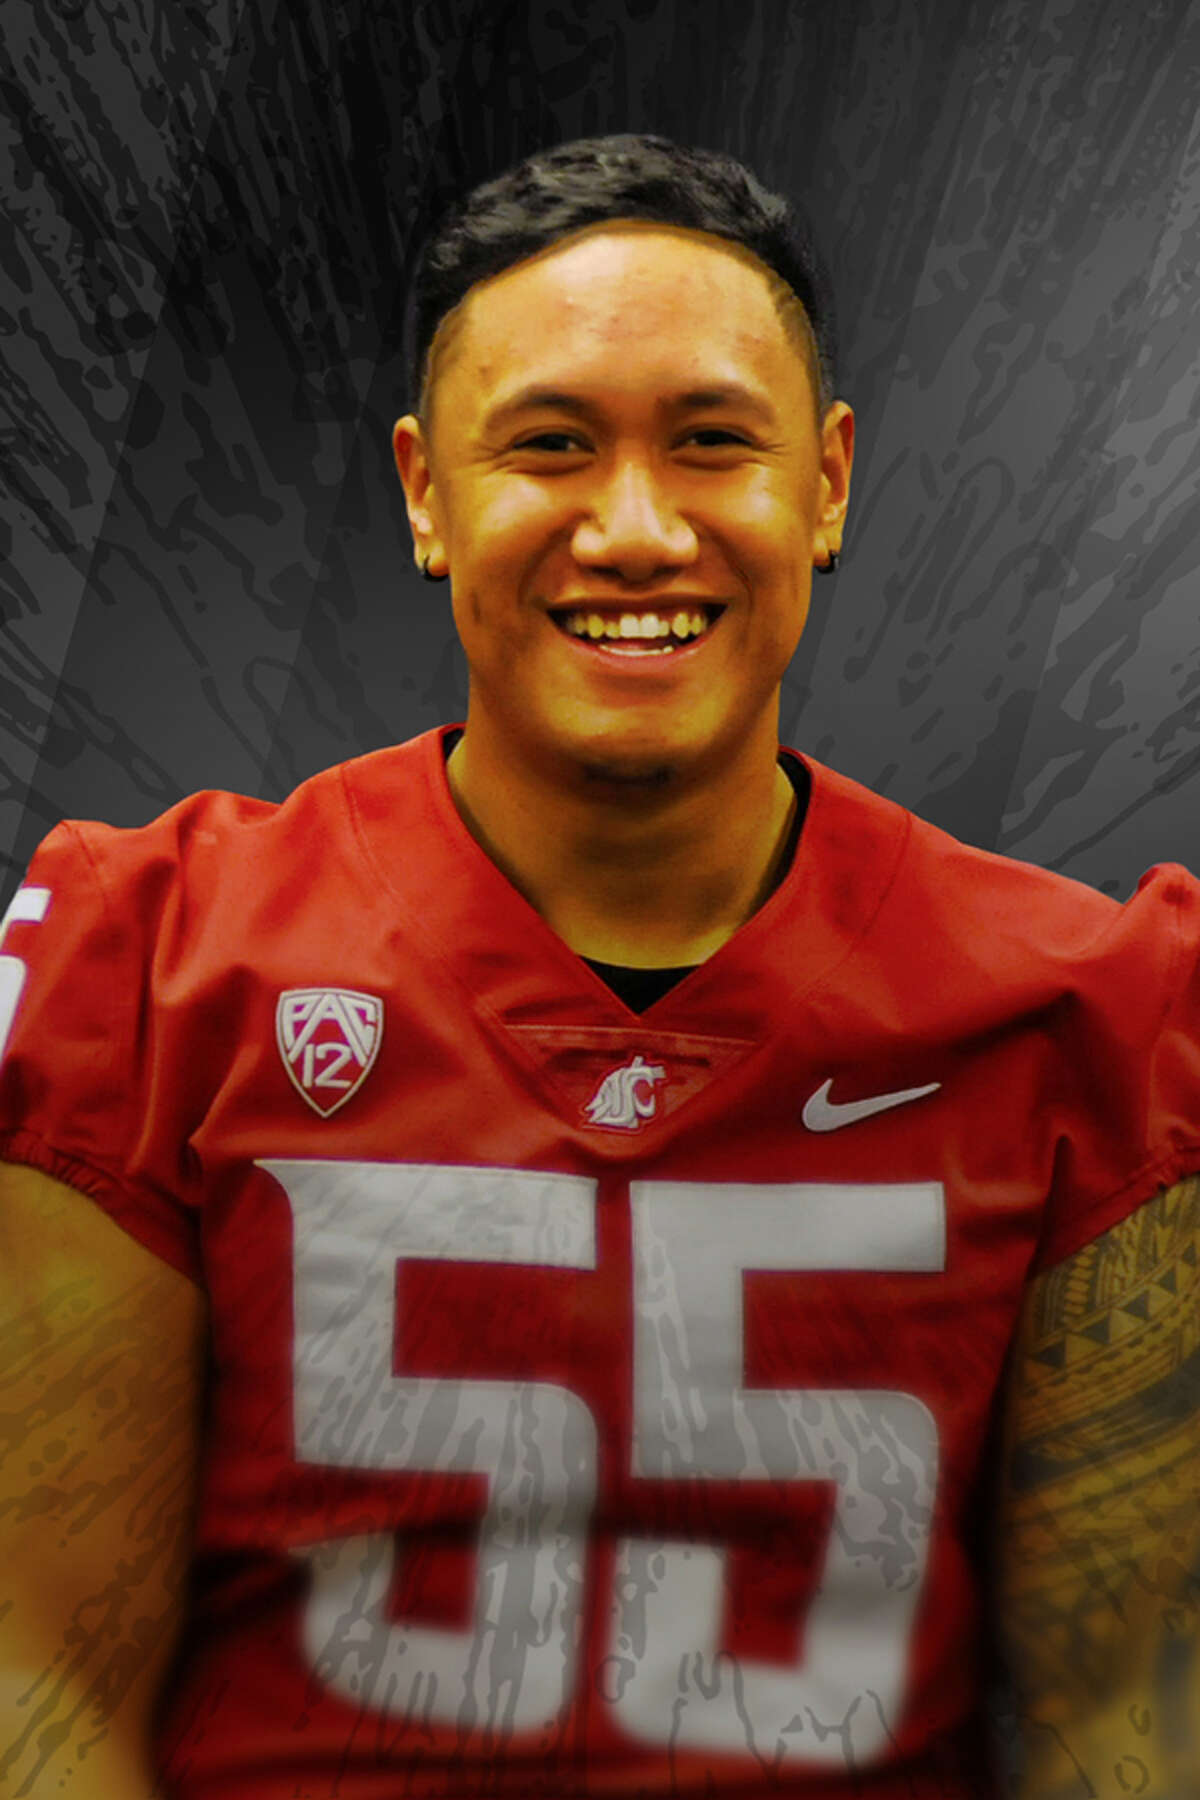 DL Misi Aiolupotea-Pei Riverside Community College (Riverside, California) 6-foot-3, 250 pounds Played defensive end at Riverside and was named to the 2017 Southern California Football Association Second Team. A native of Australia,Aiolupotea-Pei actually grew up playing Rugby, according to the Spokesman-Review.